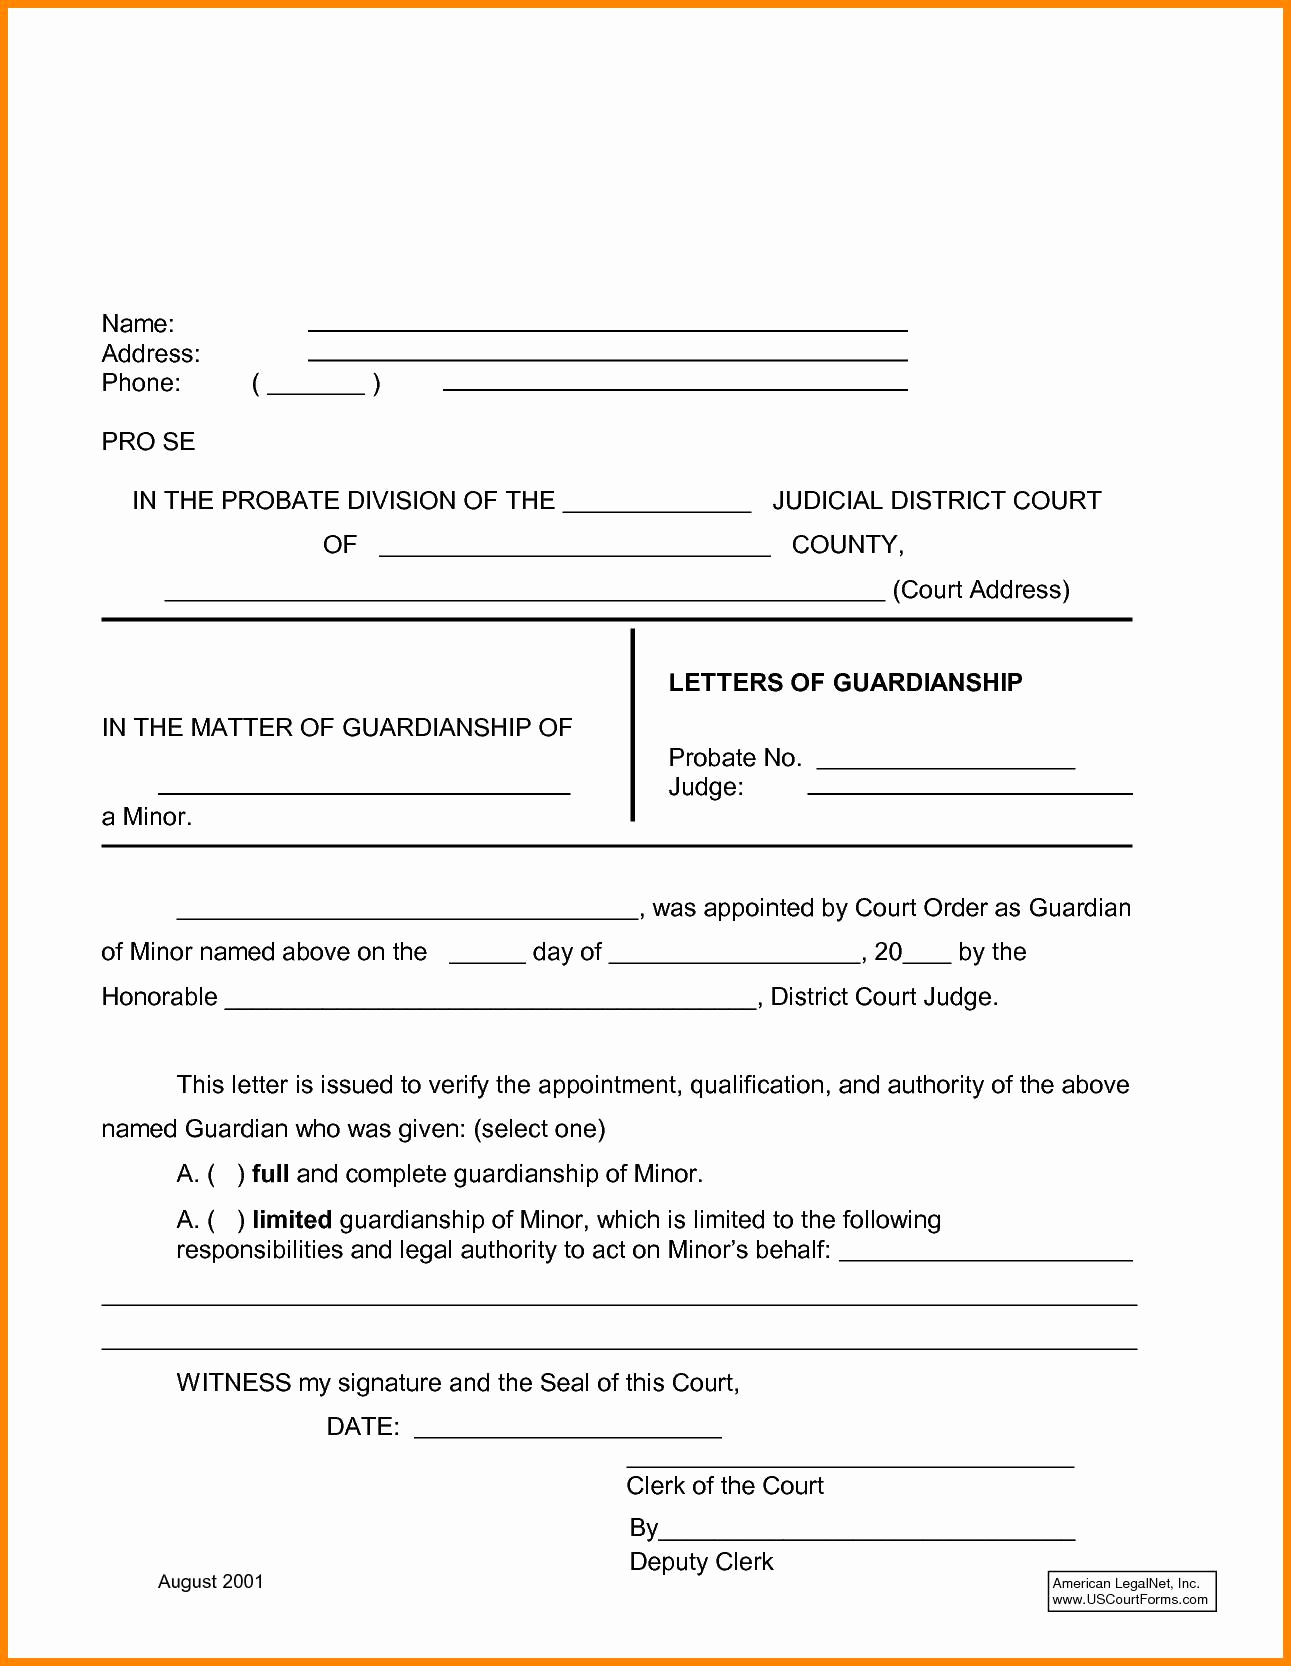 Legal Guardianship Letter Template - Temporary Guardianship Agreement form Temporary Custody Letter